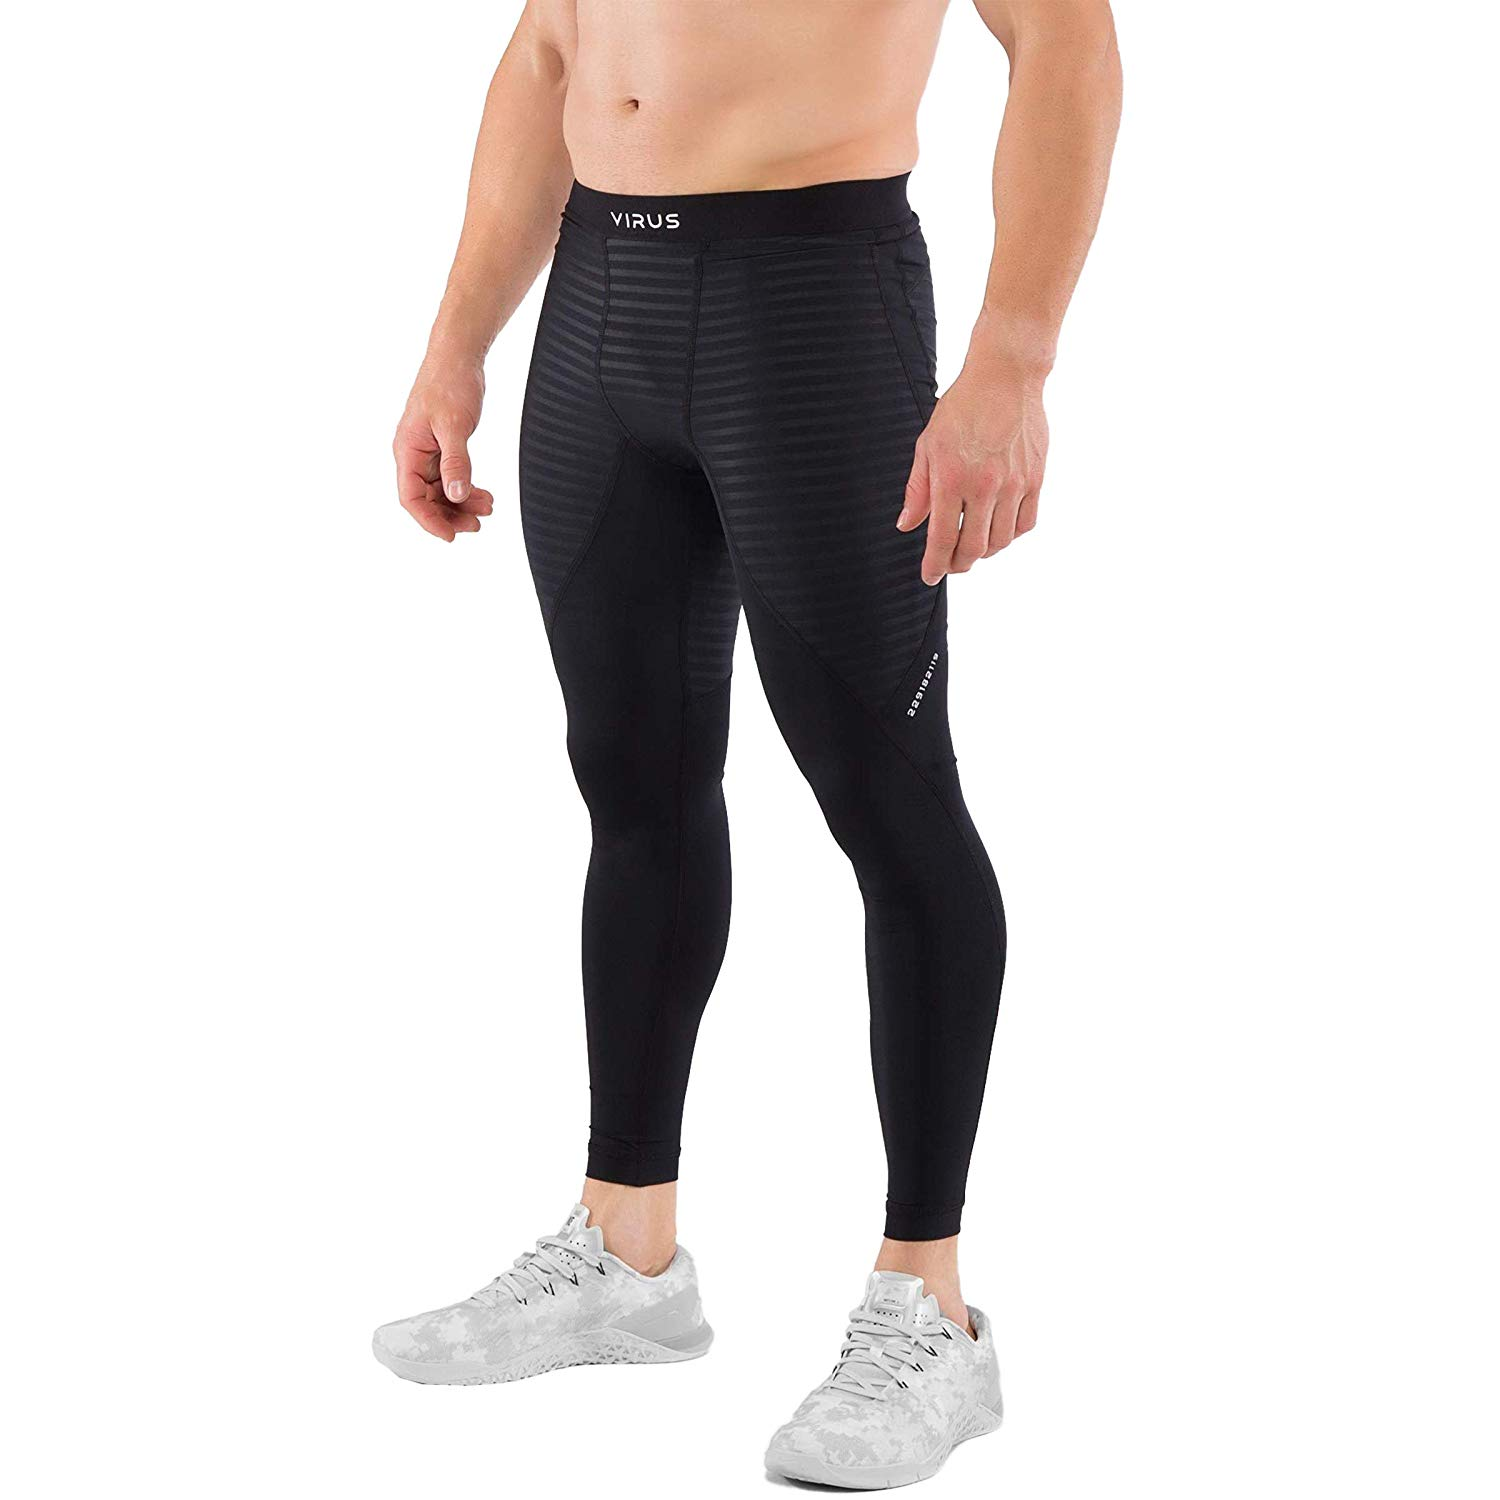 d9fd20755a Cheap Compression Pant Black, find Compression Pant Black deals on ...